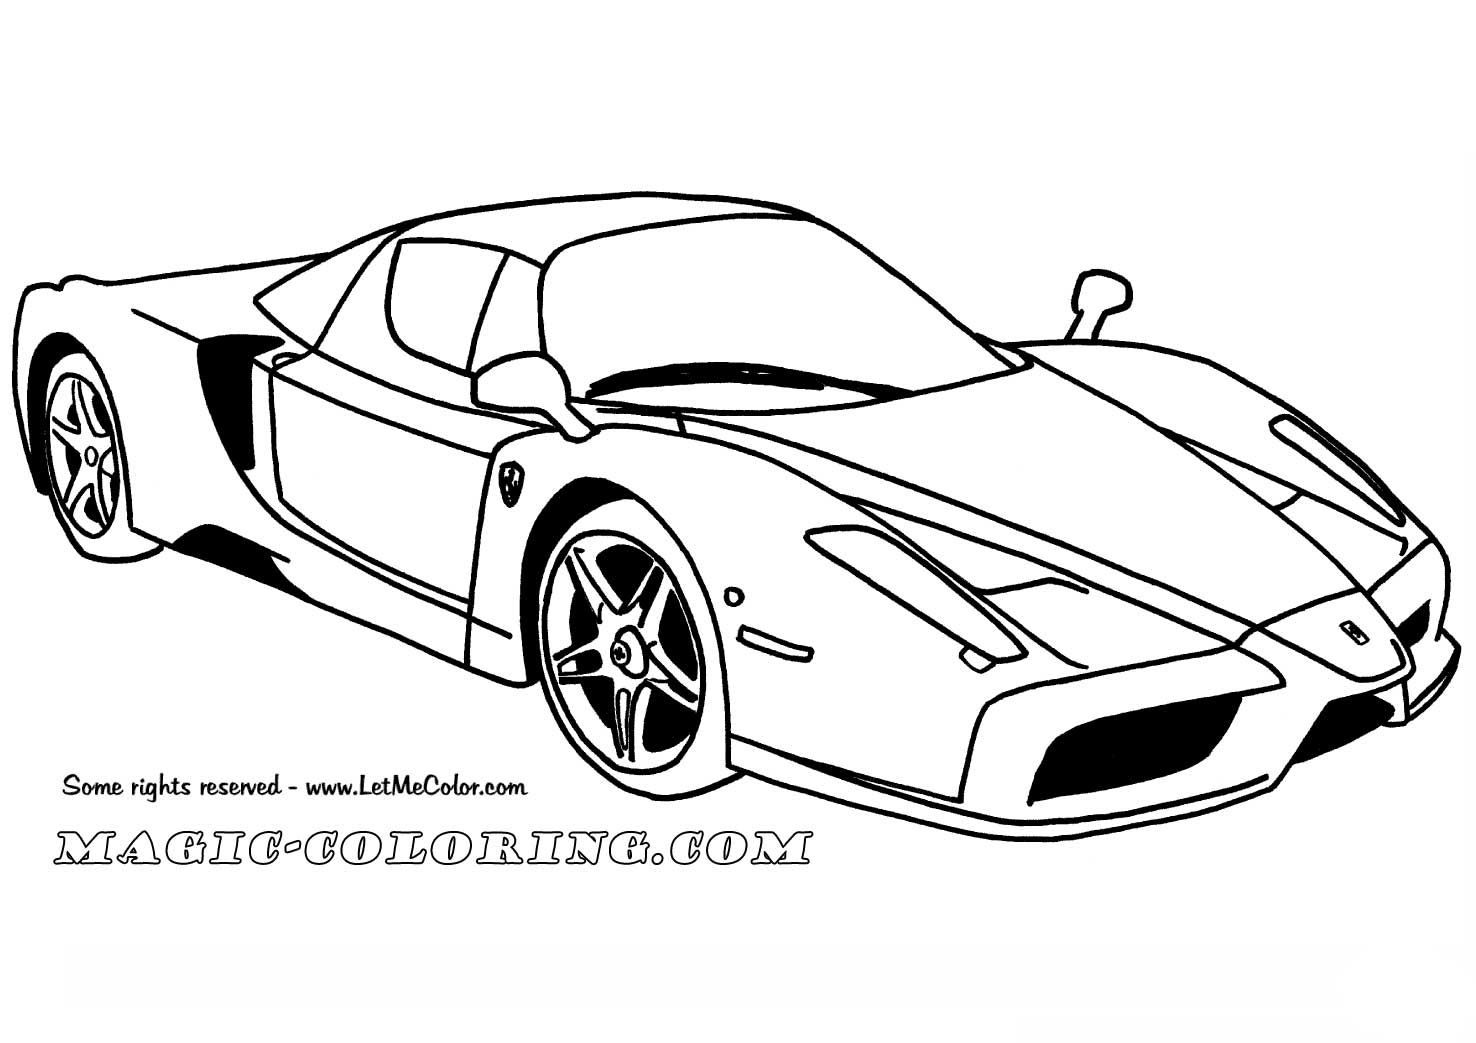 Ferrari Enzo Car Coloring Page Don T Forget To Visit Our Helpful